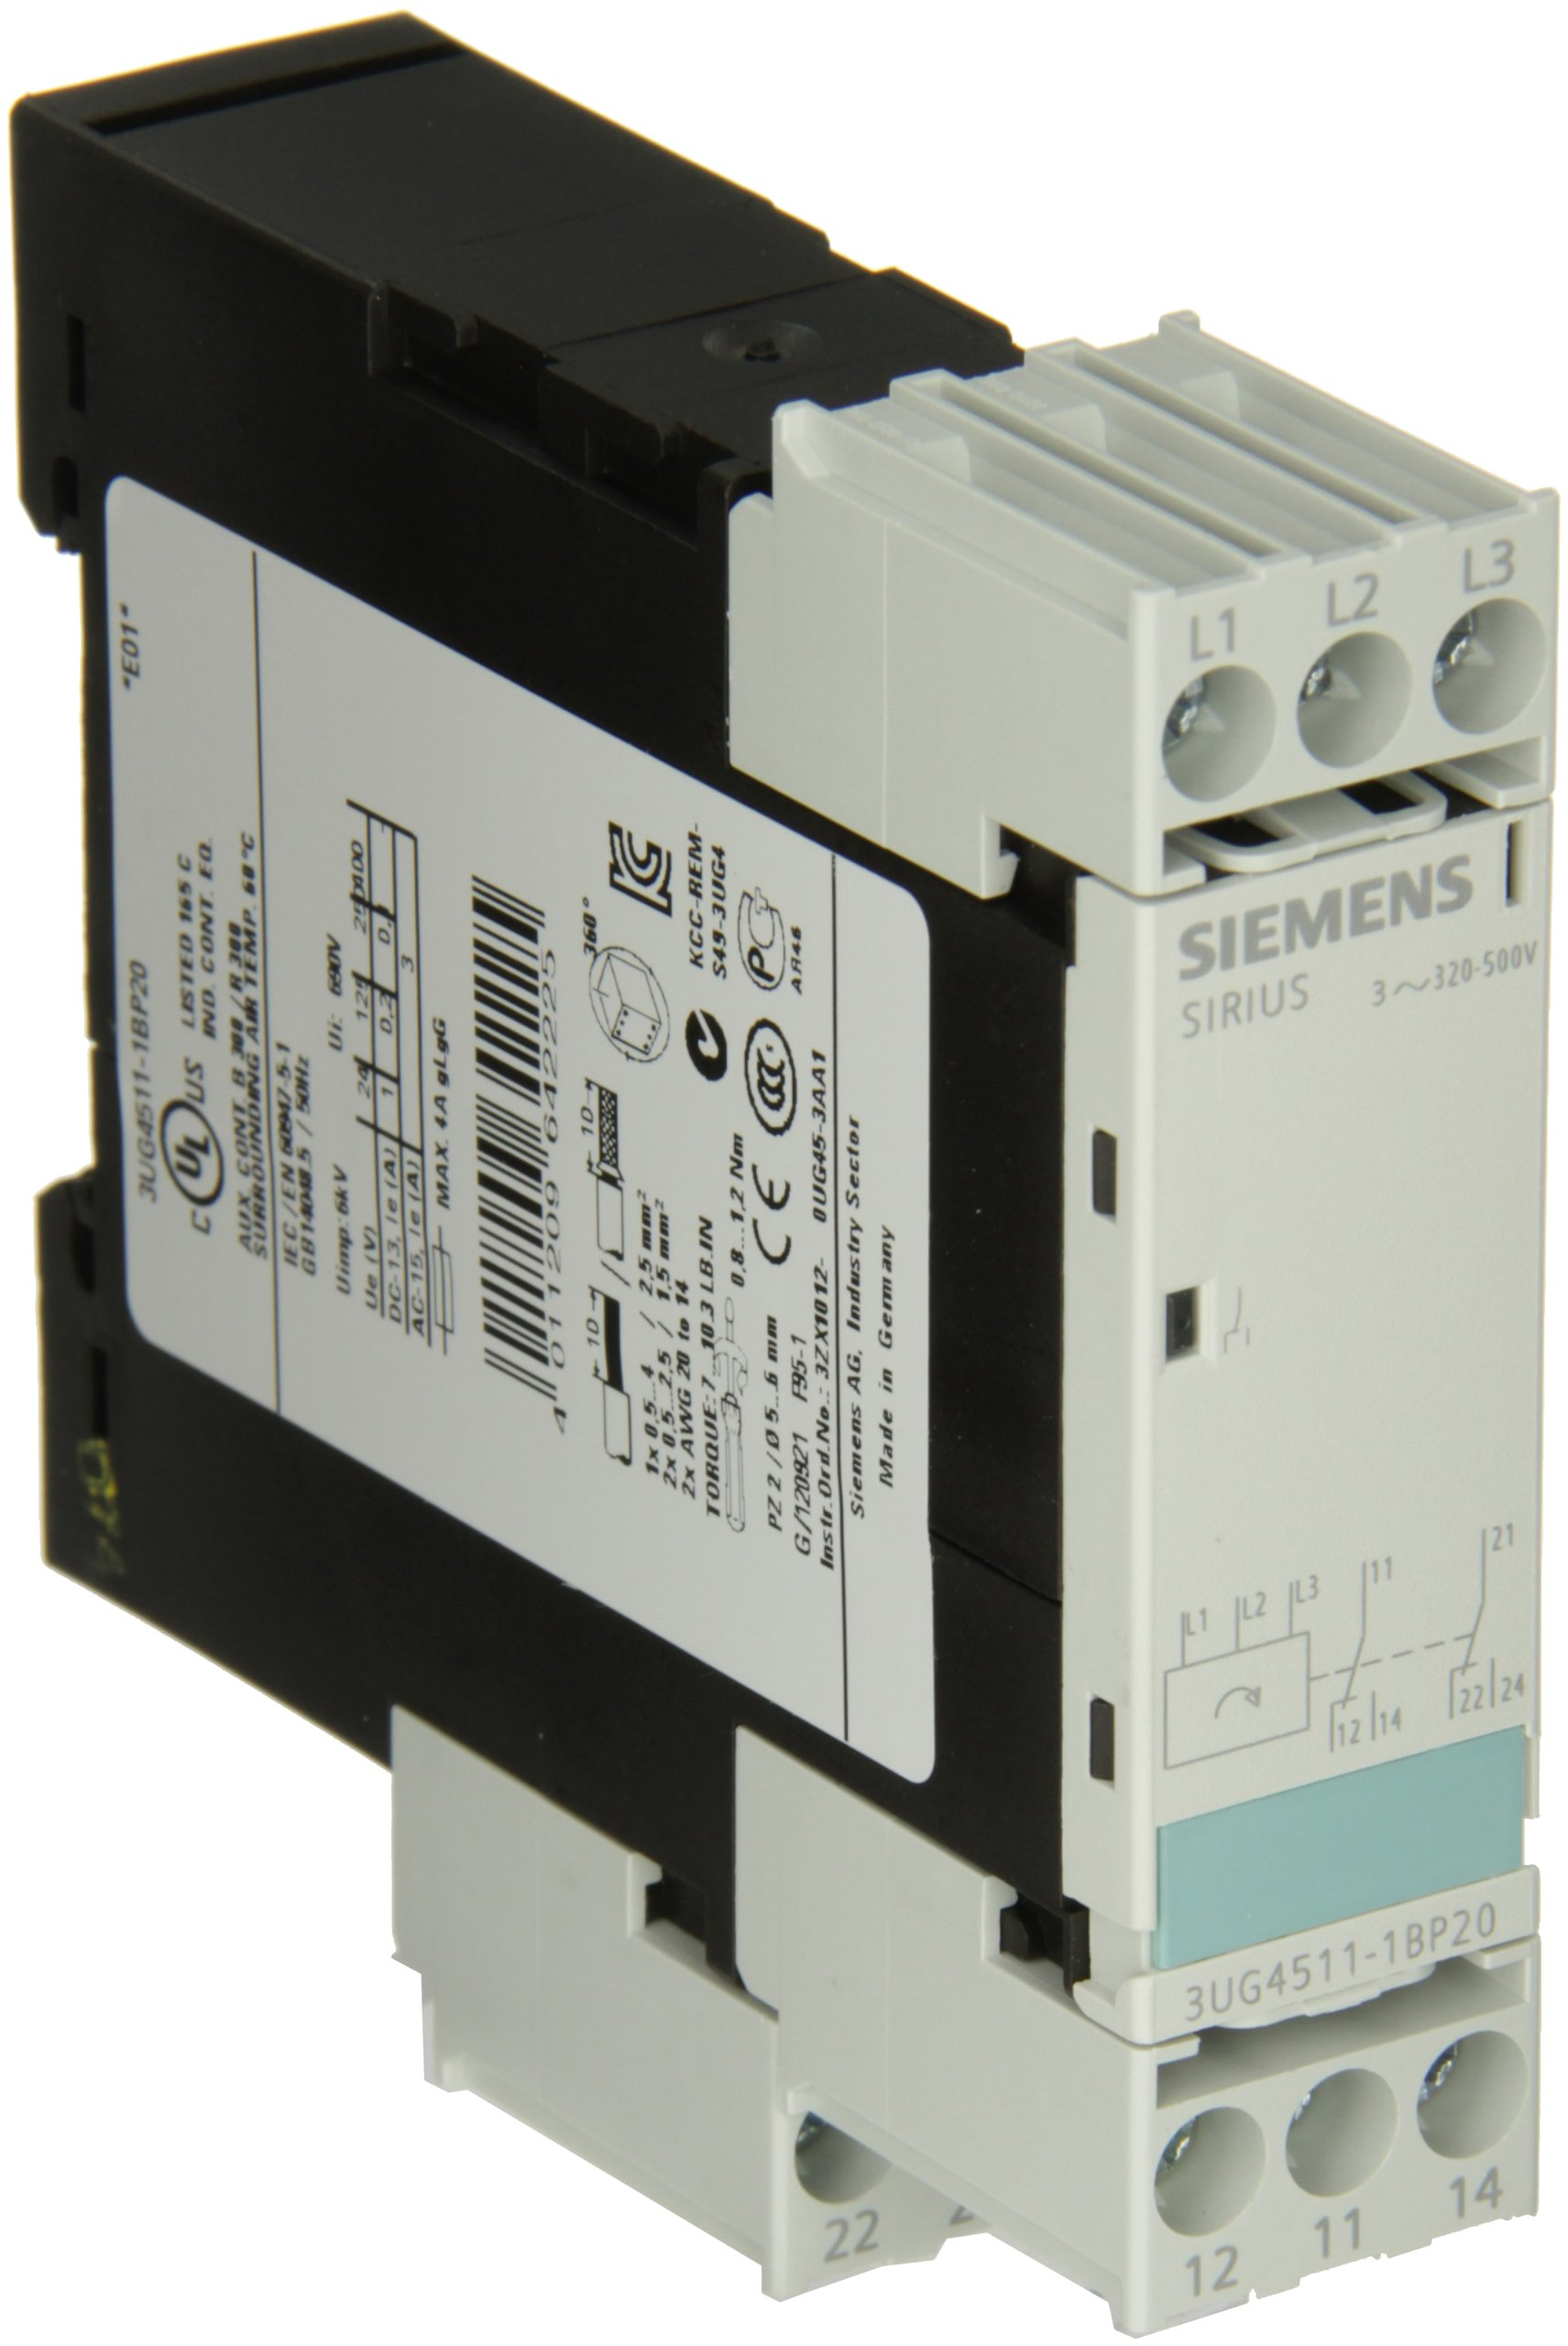 Siemens 3UG4511-1BP20 Monitoring Relay, Three Phase Voltage, Insulation Monitoring, 22.5mm Width, Screw Terminal, 2 CO Contacts, Delay Time, 420-690 Line Supply Voltage by SIEMENS